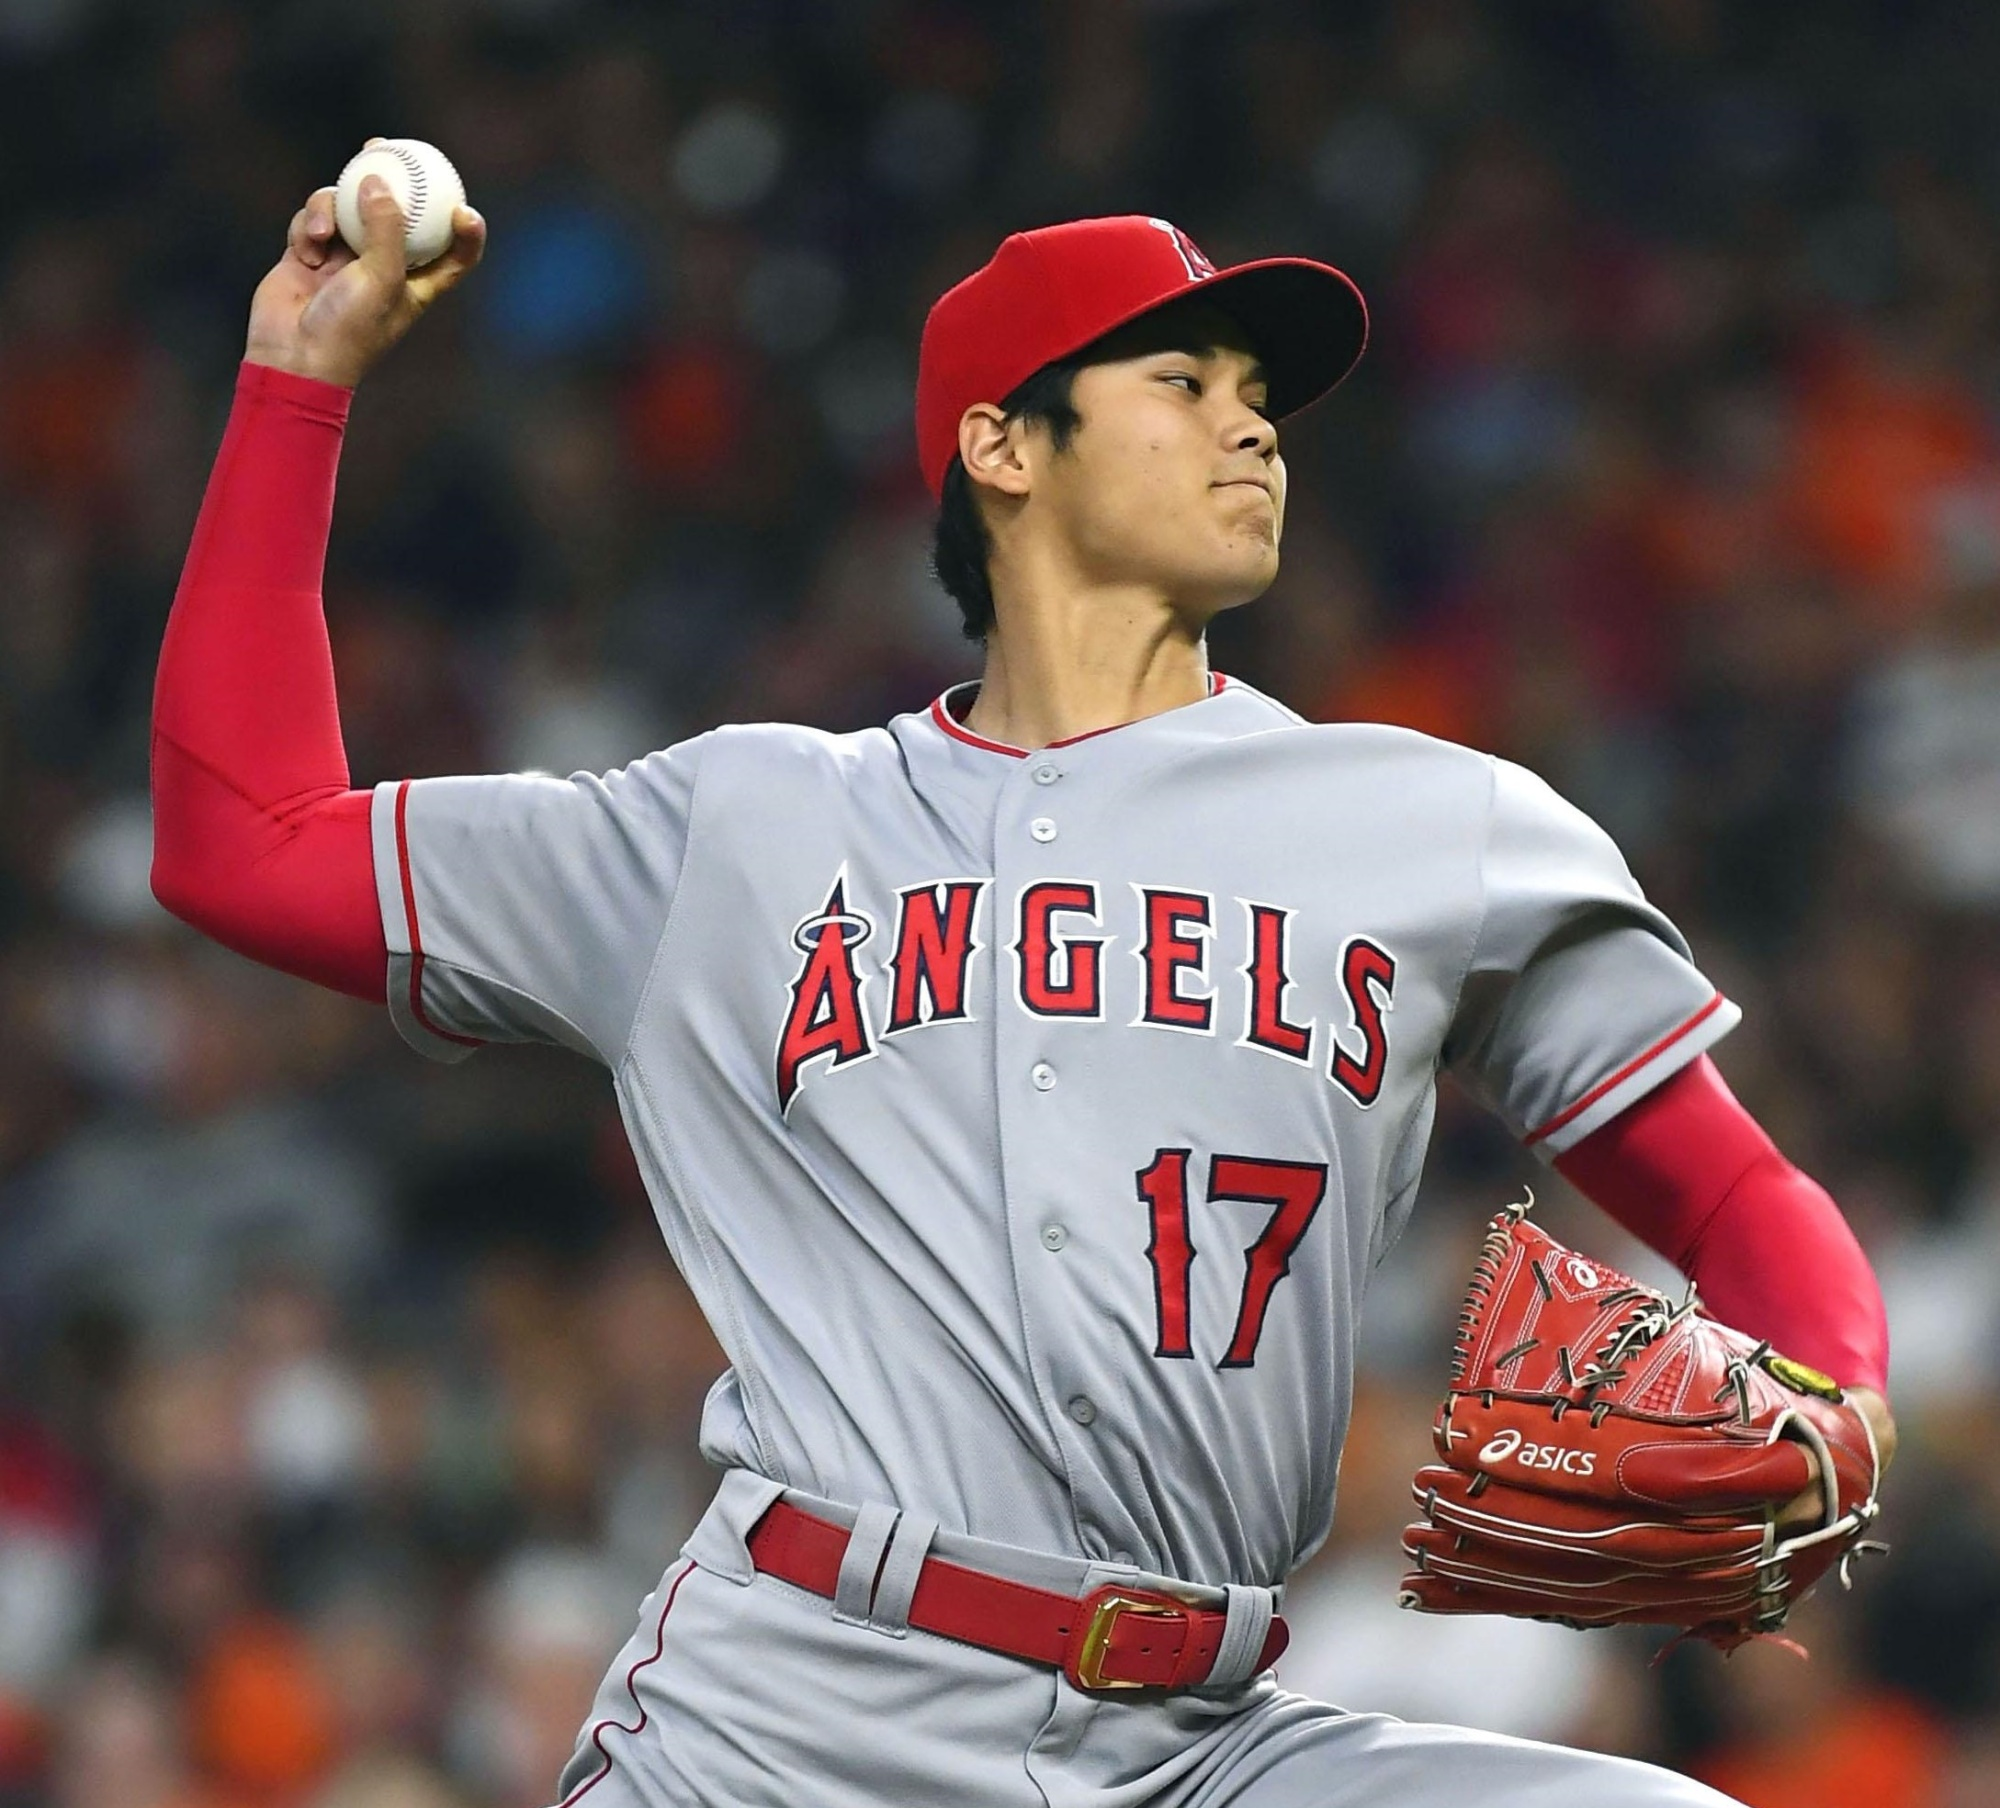 Los Angeles Angels announced Tuesday Shohei Ohtani will undergo Tommy John surgery next week.